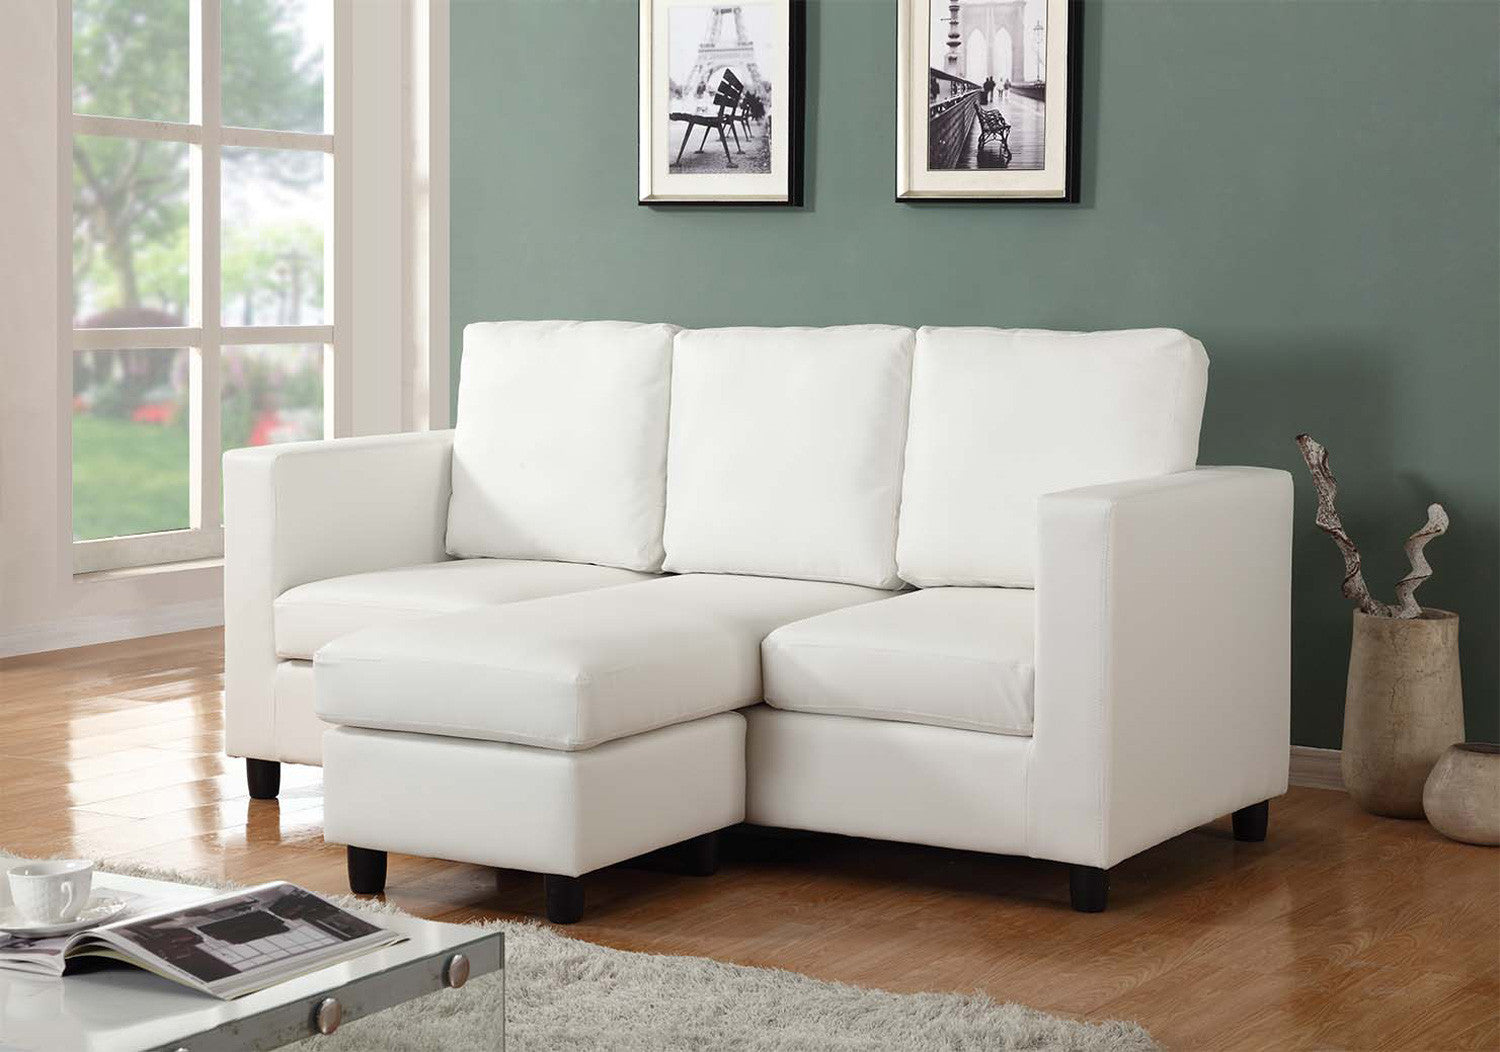 Apartment Size Sectional Sofa Leather Small Sectional Sofa For